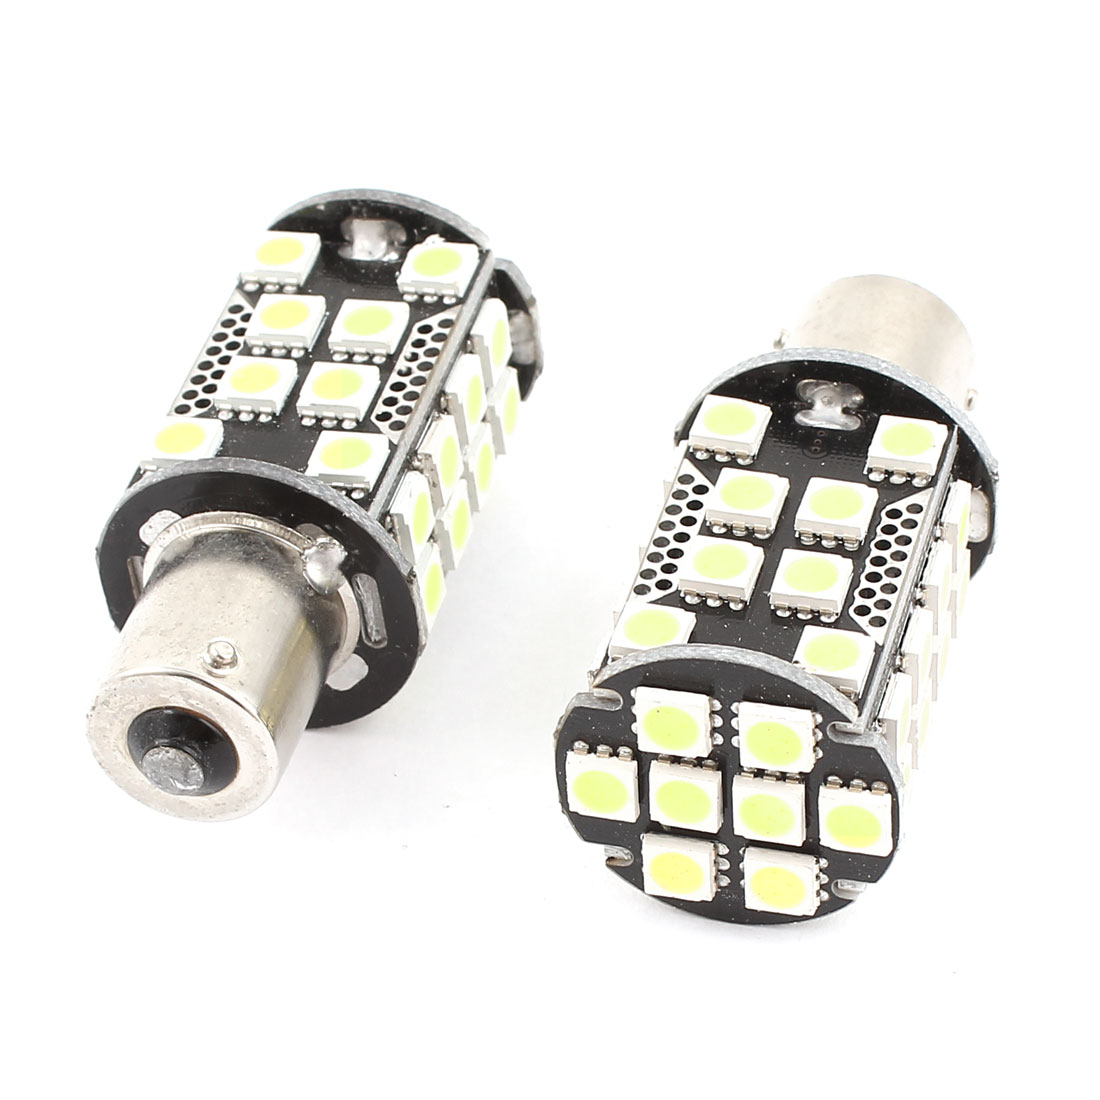 BA15S 1156 5050 SMD 40 LED Car Corner Tail Turn Signal Light White 1073 1259 2 Pcs